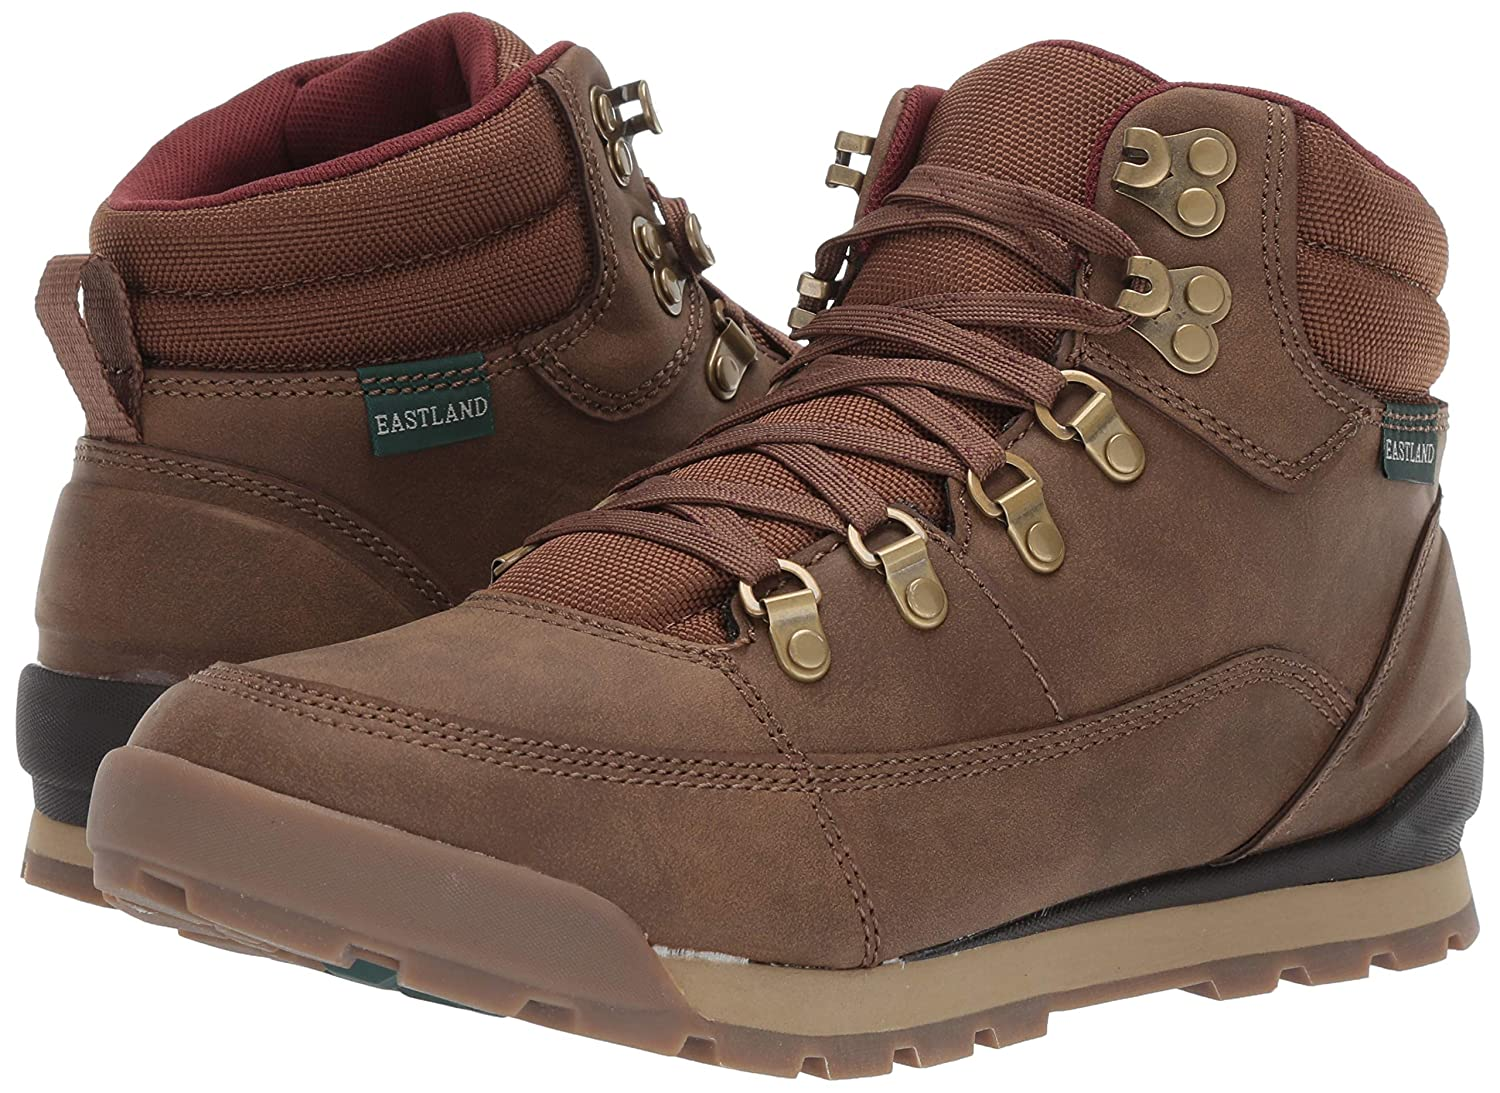 c81aee17649 Eastland Men's Canyon Ankle Boot